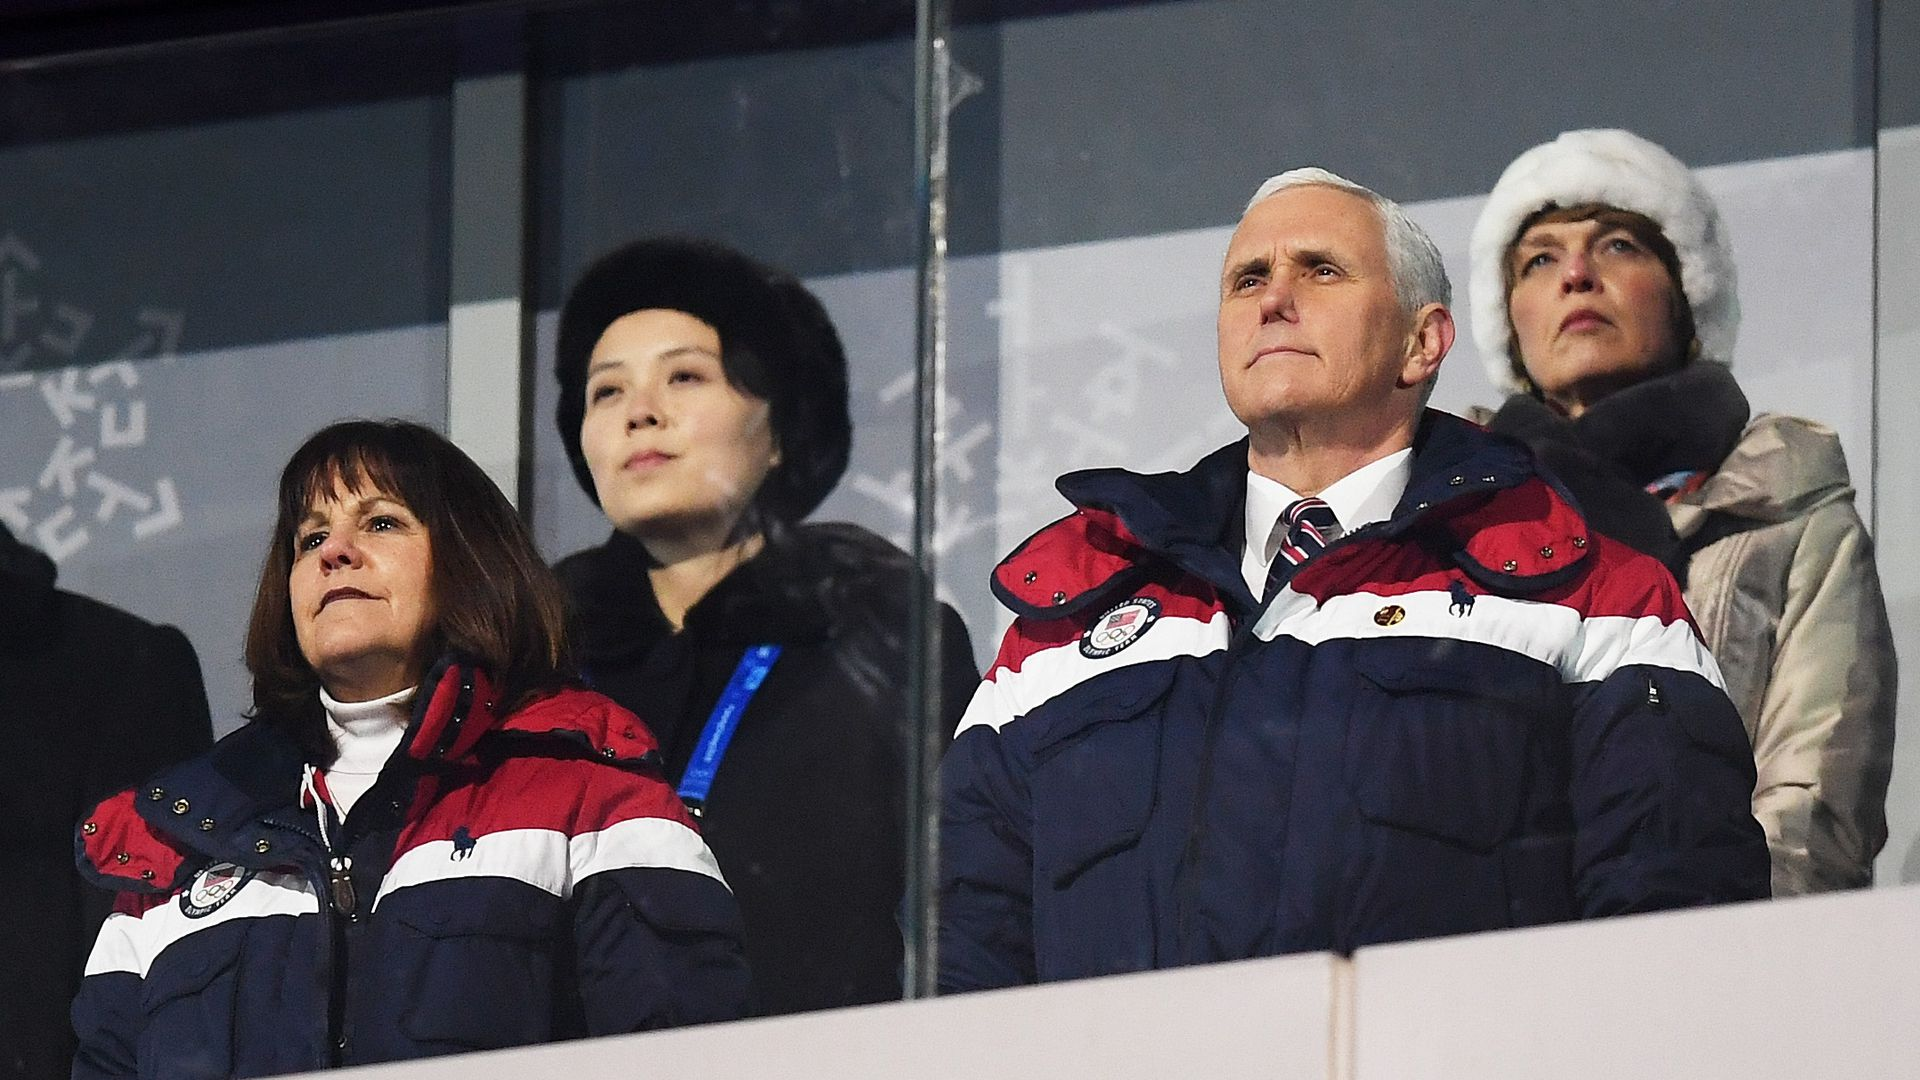 Mike Pence at the Winter Olympics in South Korea